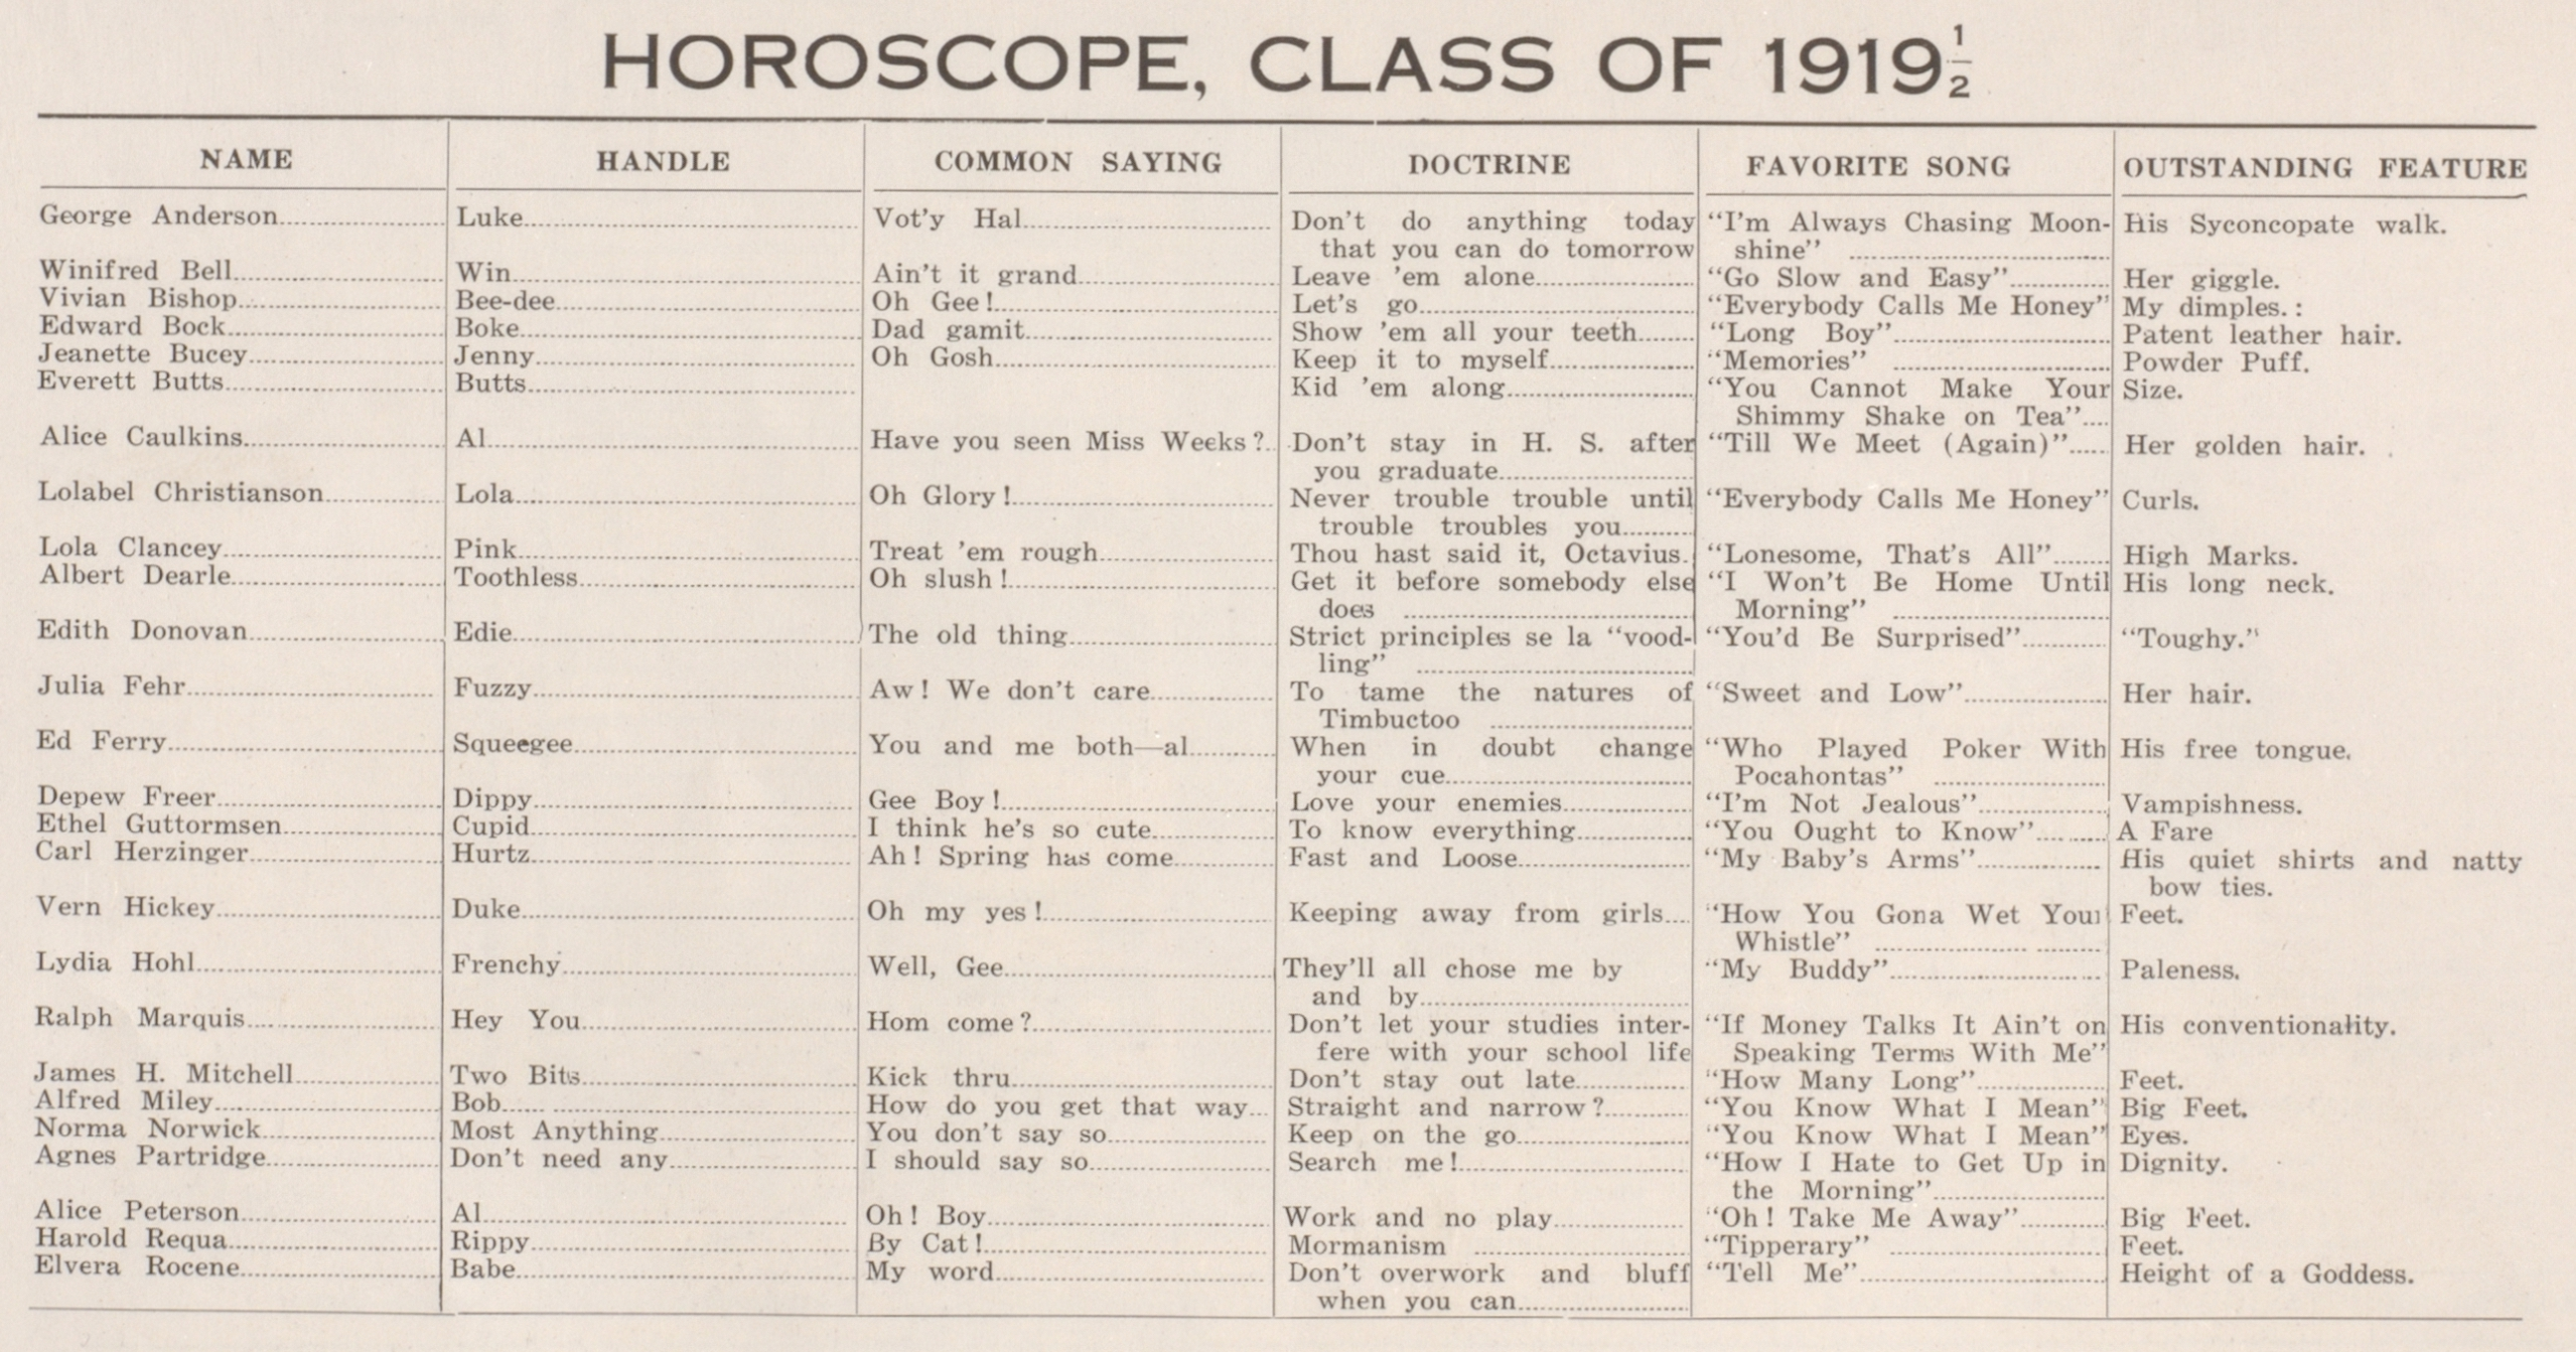 Horoscope page for the class of 1919 1/2